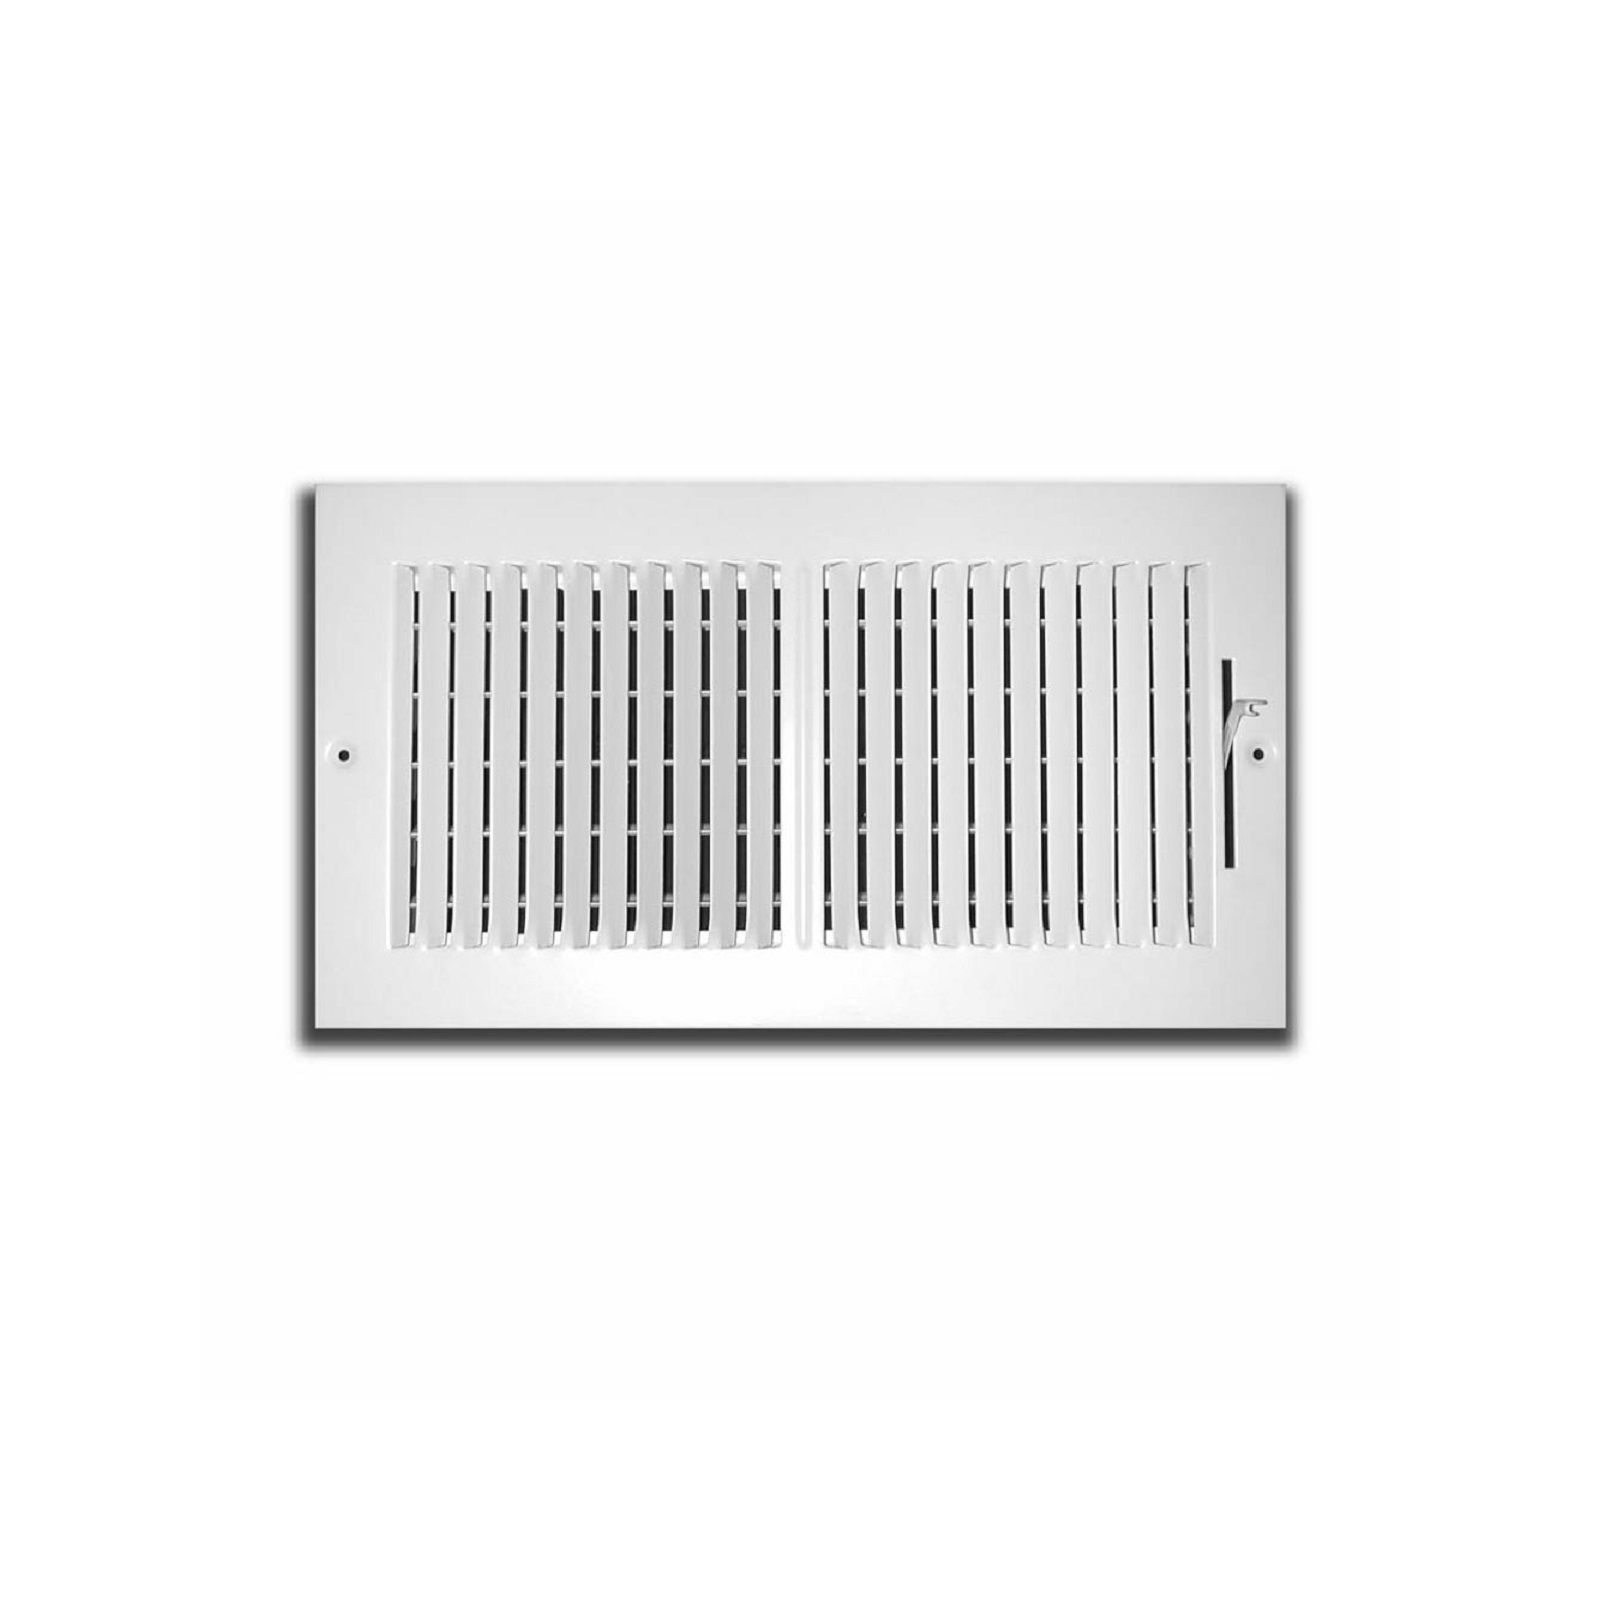 "TRUaire 102M 06X04 - Stamped Steel 2-Way Wall/Ceiling Register, 06"" X 04"""